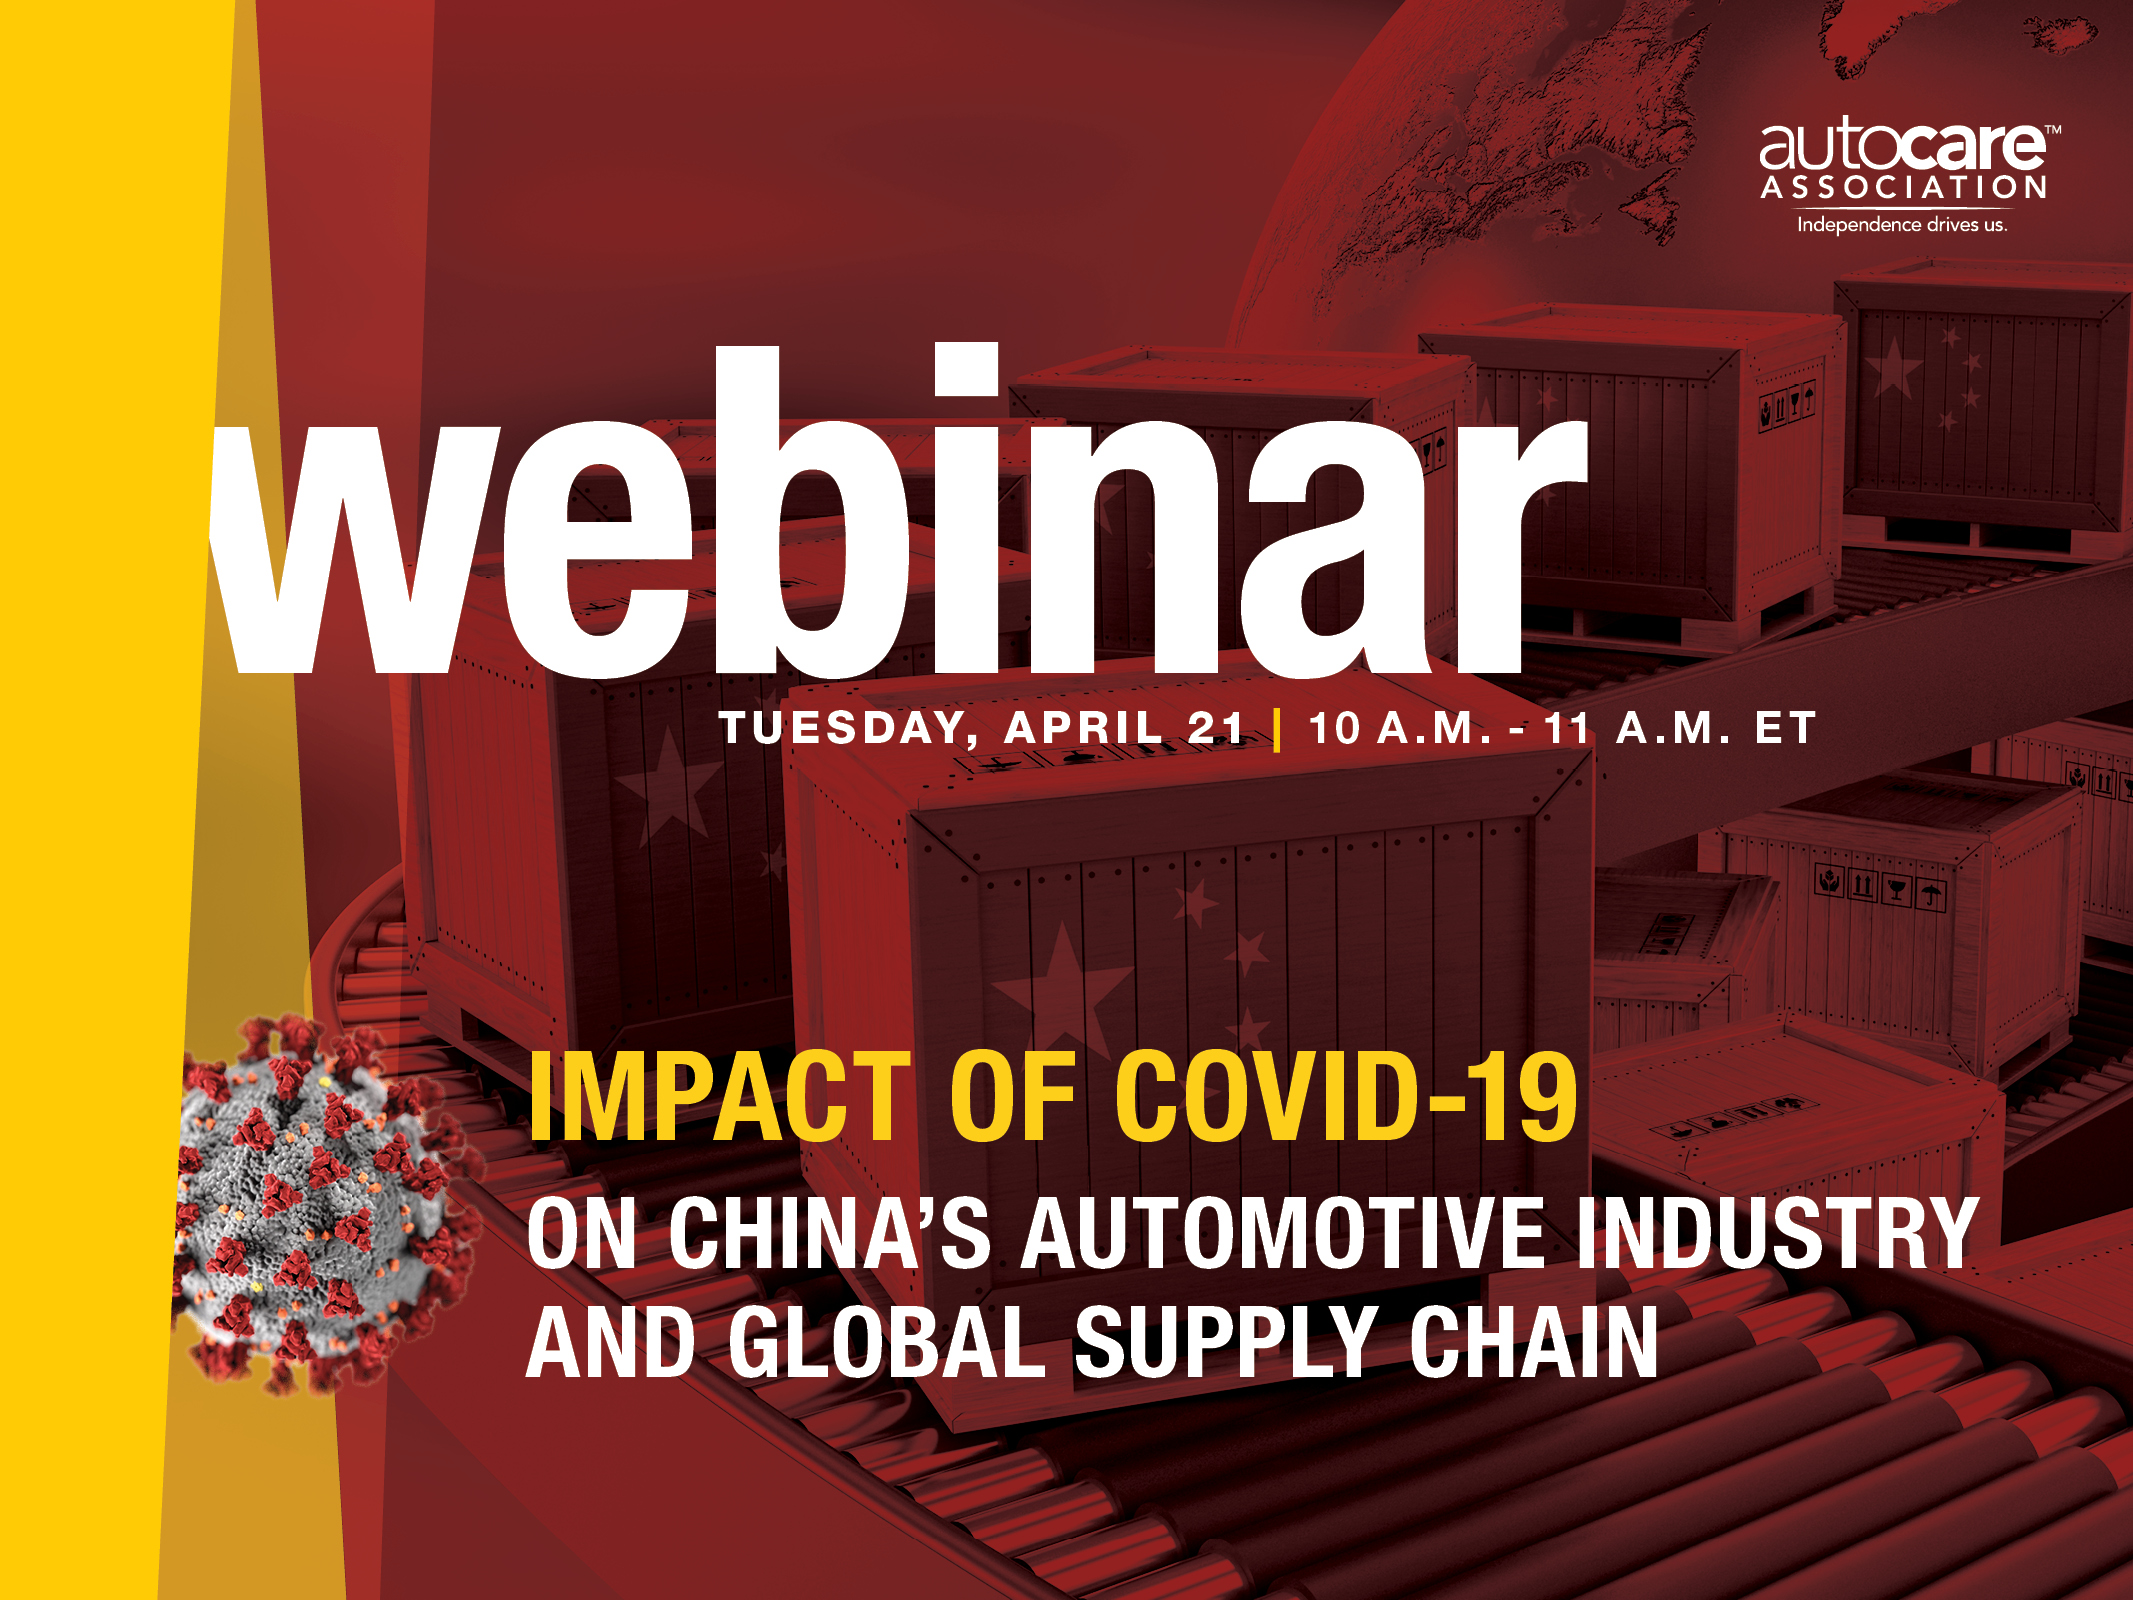 Impact of COVID-19 on China's Automotive Industry and Global Supply Chain